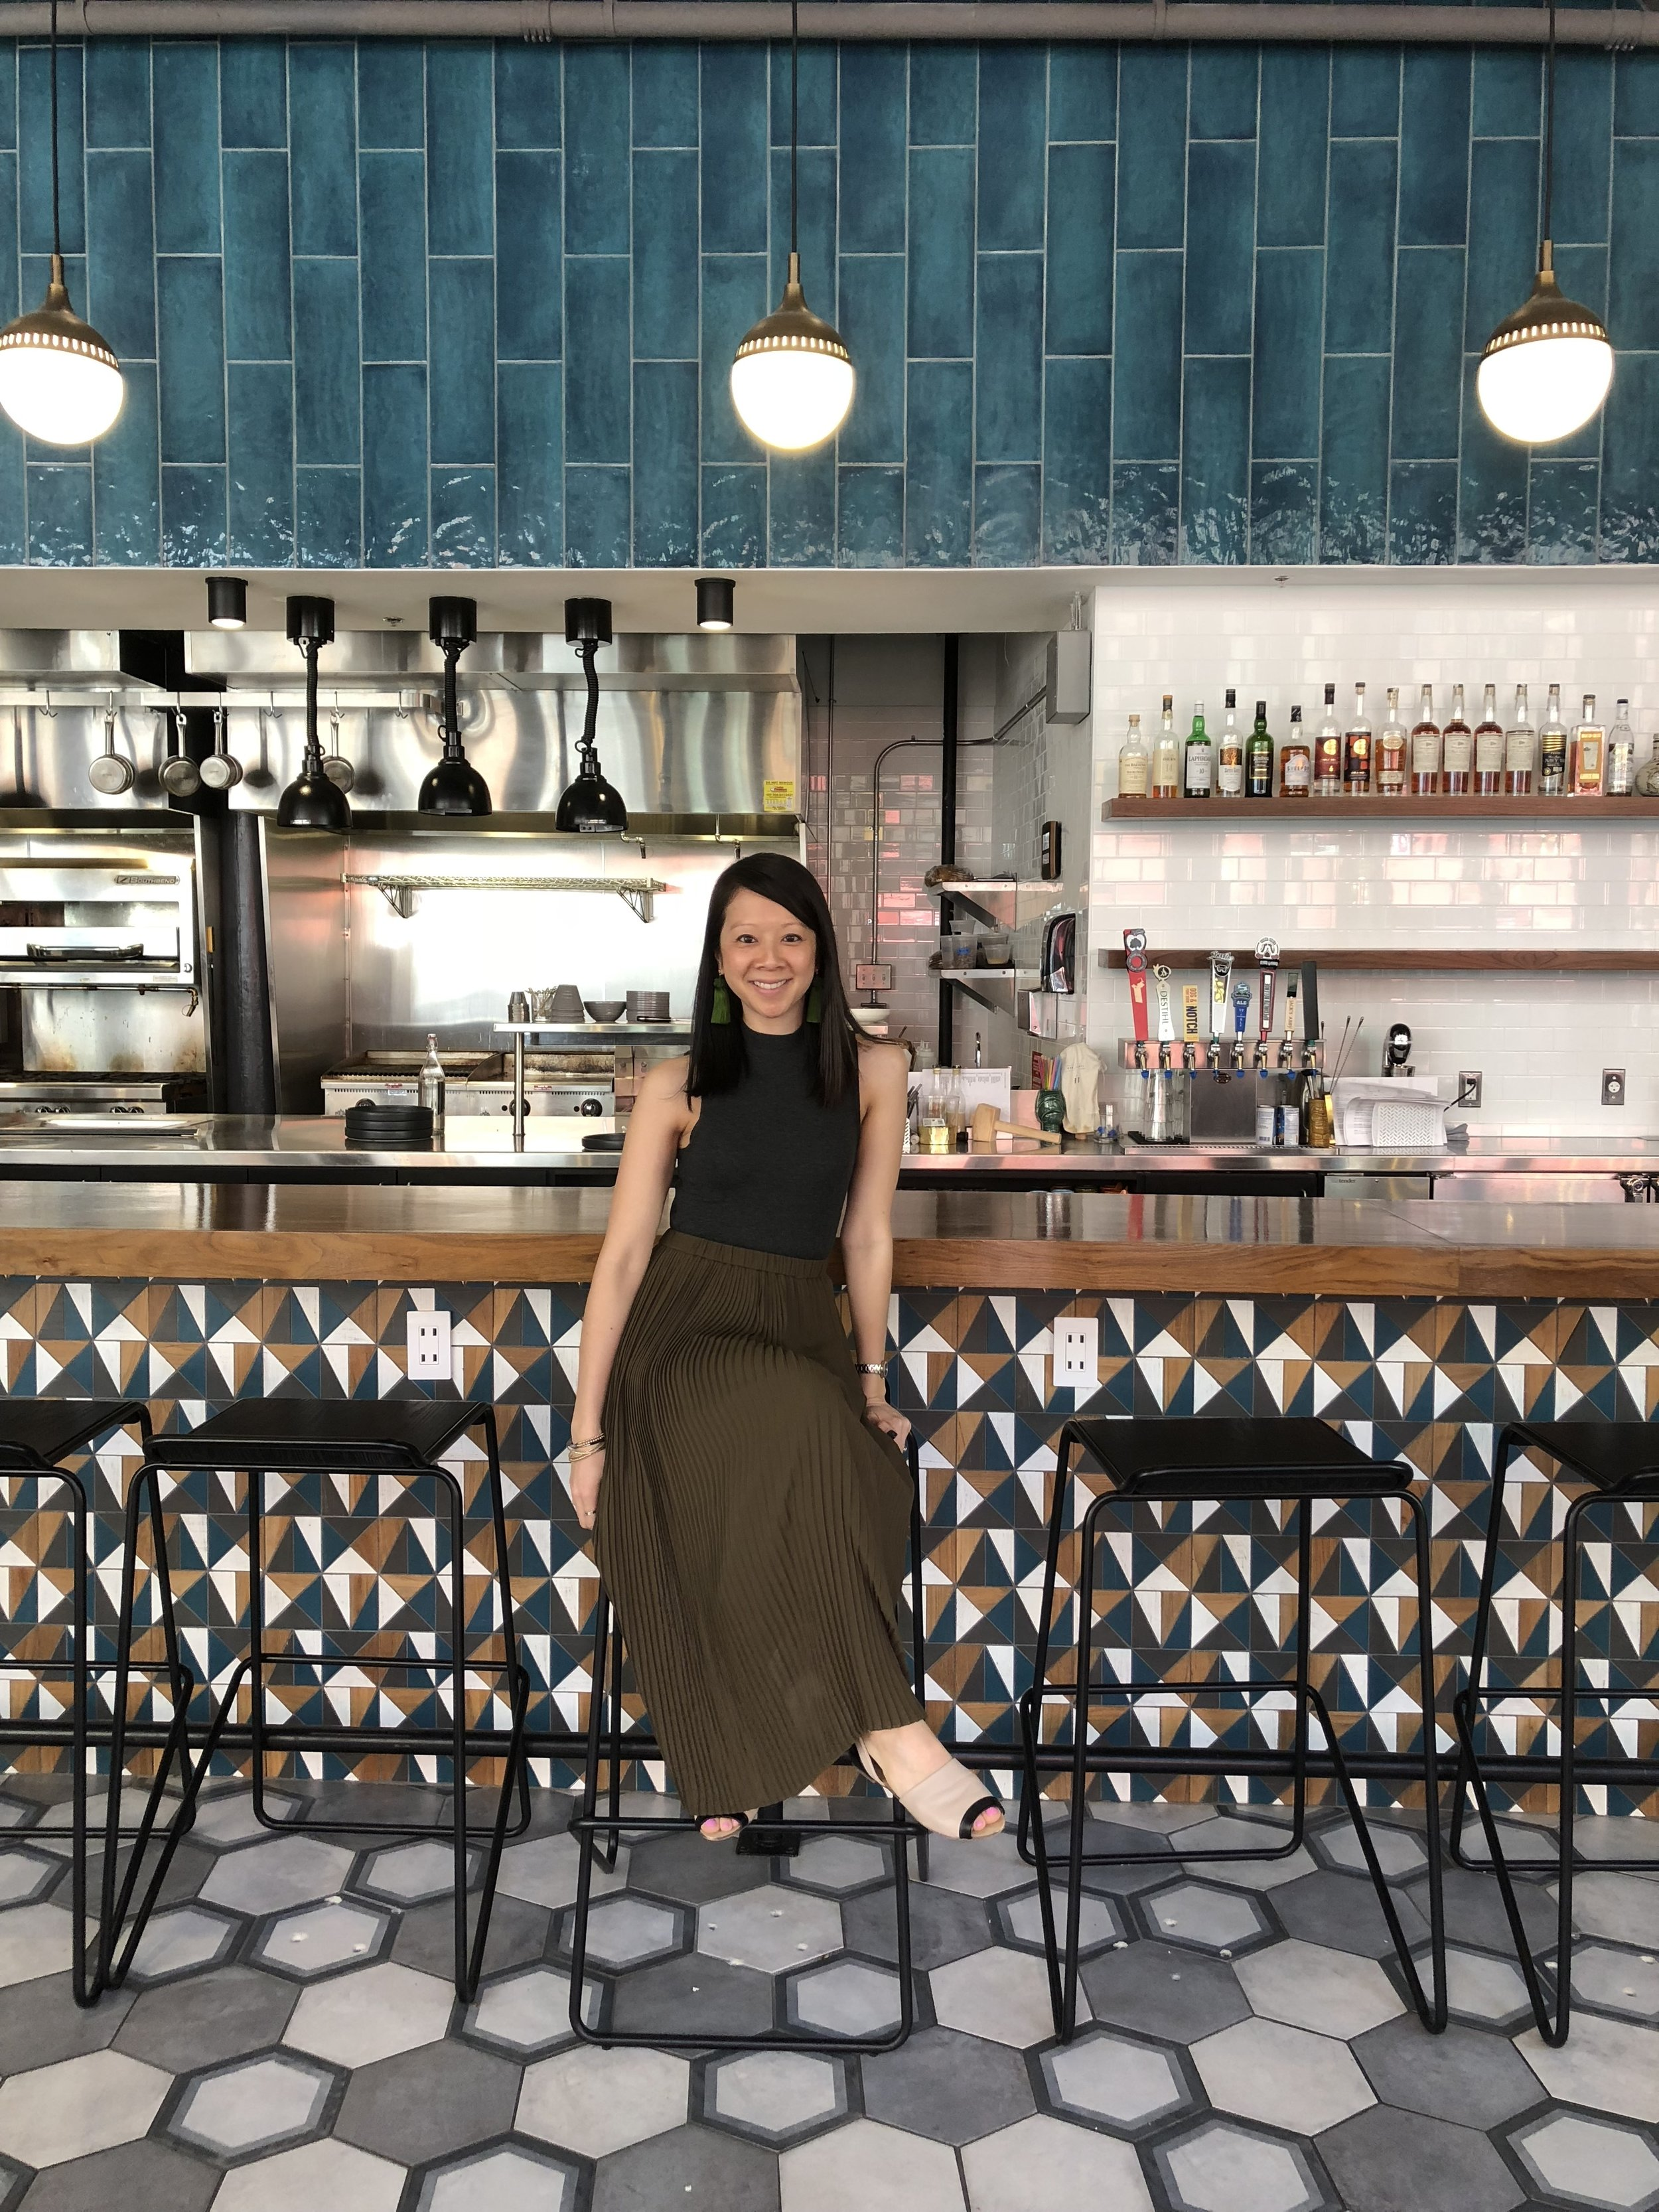 Here's a shot of the bar at Counter - I am loving the tiles on the floor and on the back of the bar area. Couldn't pass up a photo opp while it was quiet!